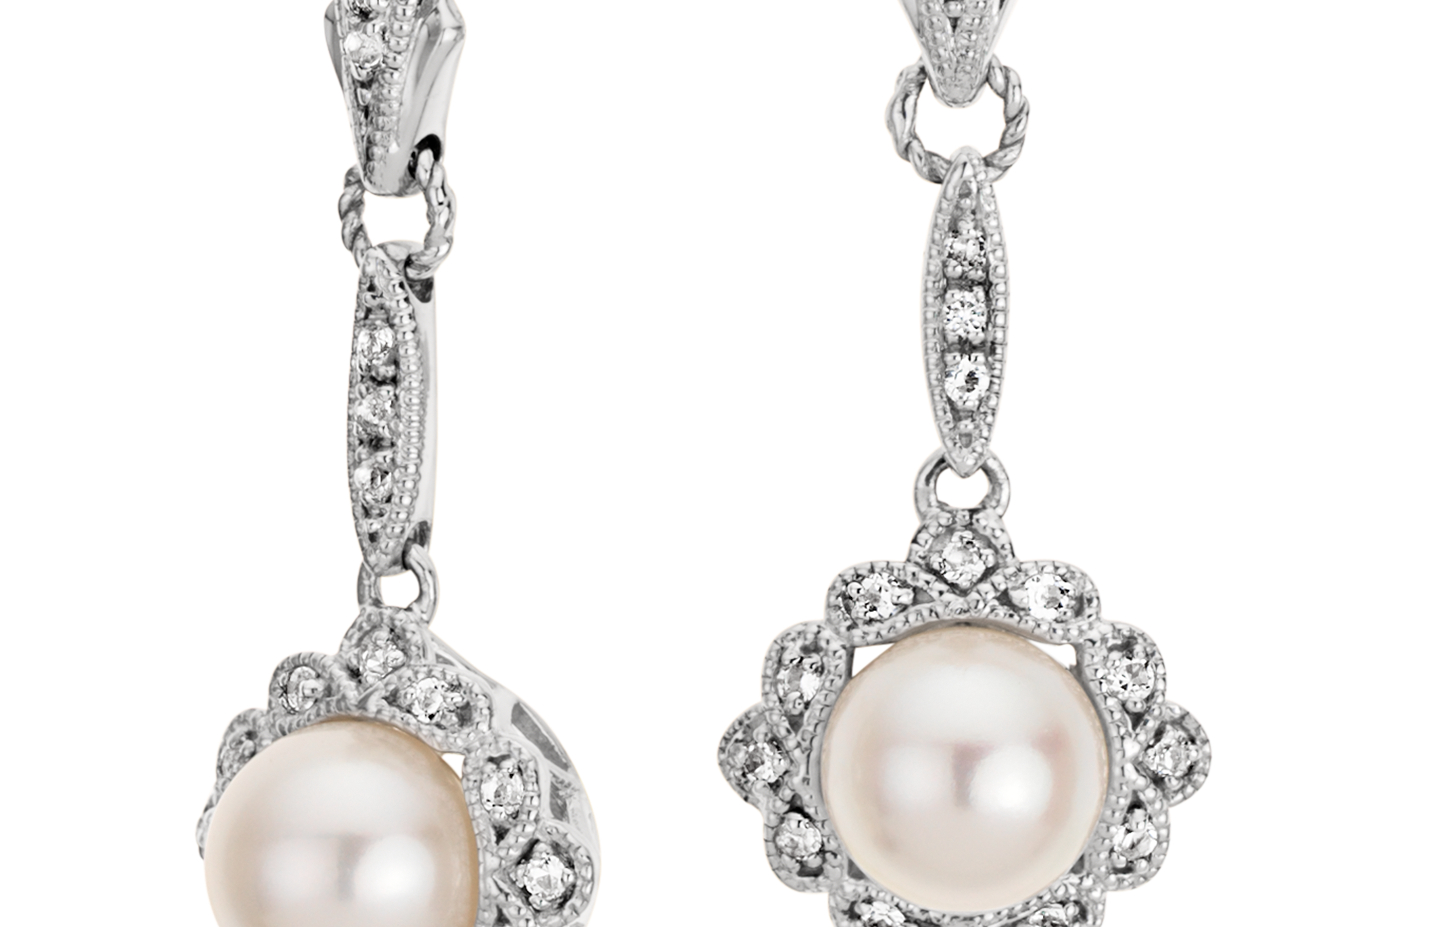 Vintage-Inspired Freshwater Cultured Pearl Earrings in Sterling Silver (6mm)